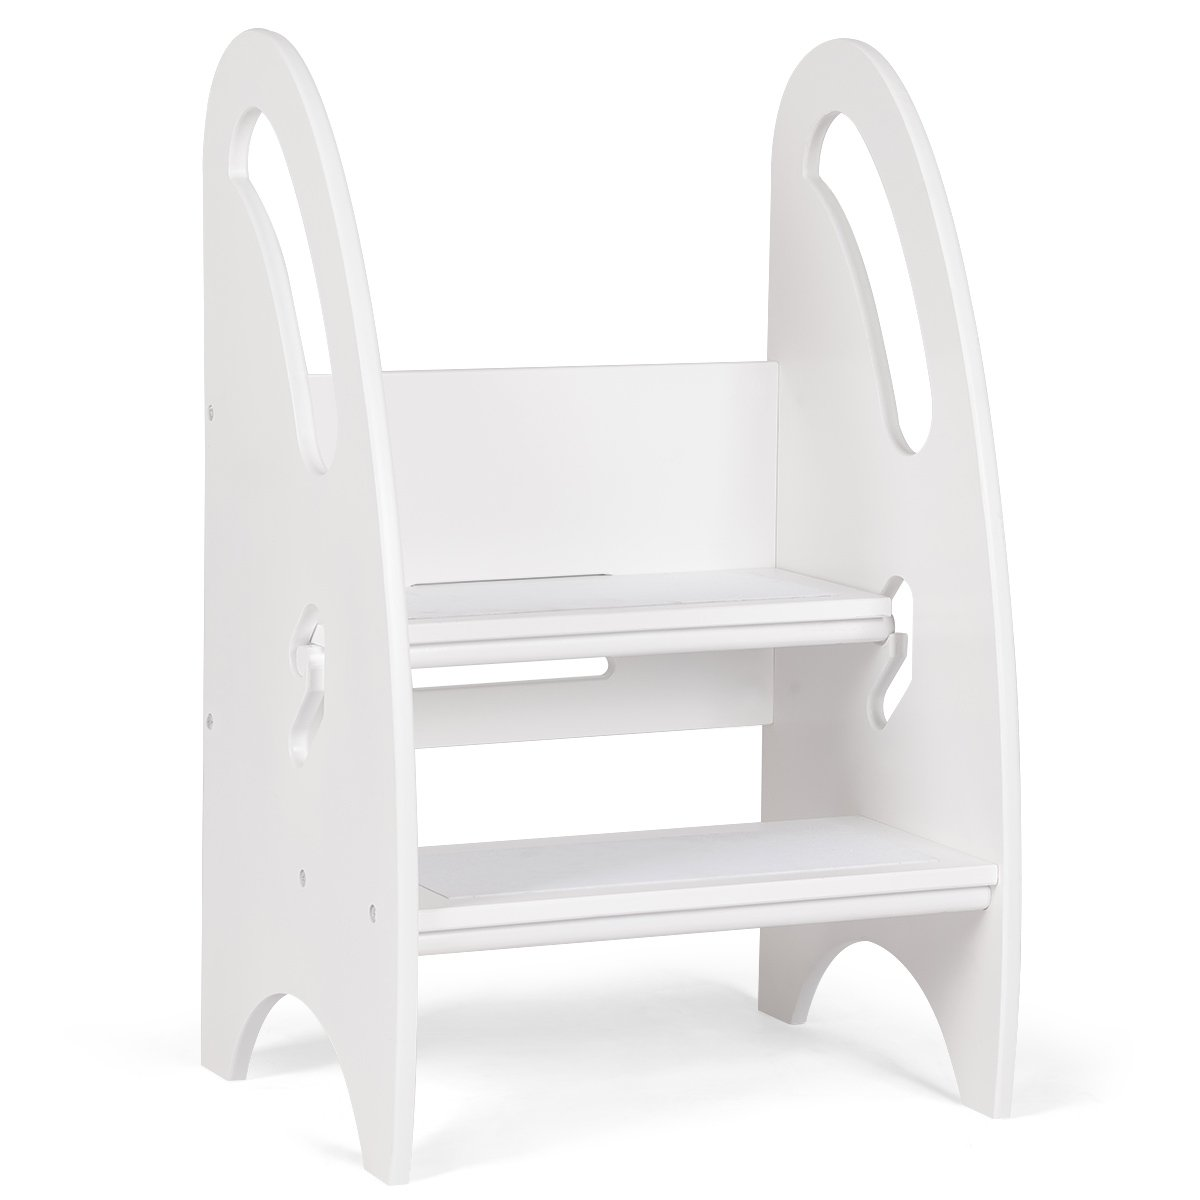 Costzon Toddler Growing Step Stool, Height Adjustable Nursery Footstool for Kitchen Bathroom, Non-Slip Blanket Attached (White)